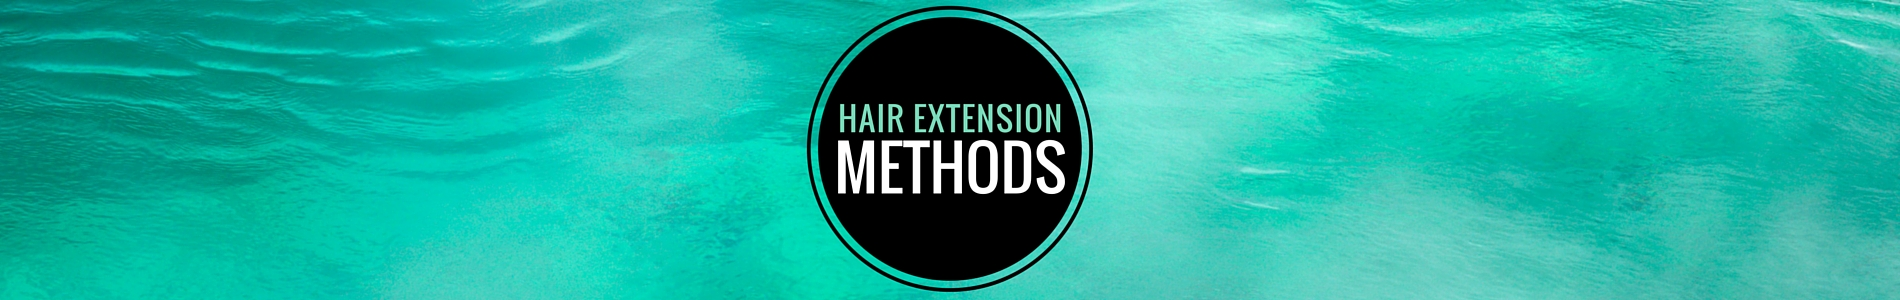 hair extension methods banner